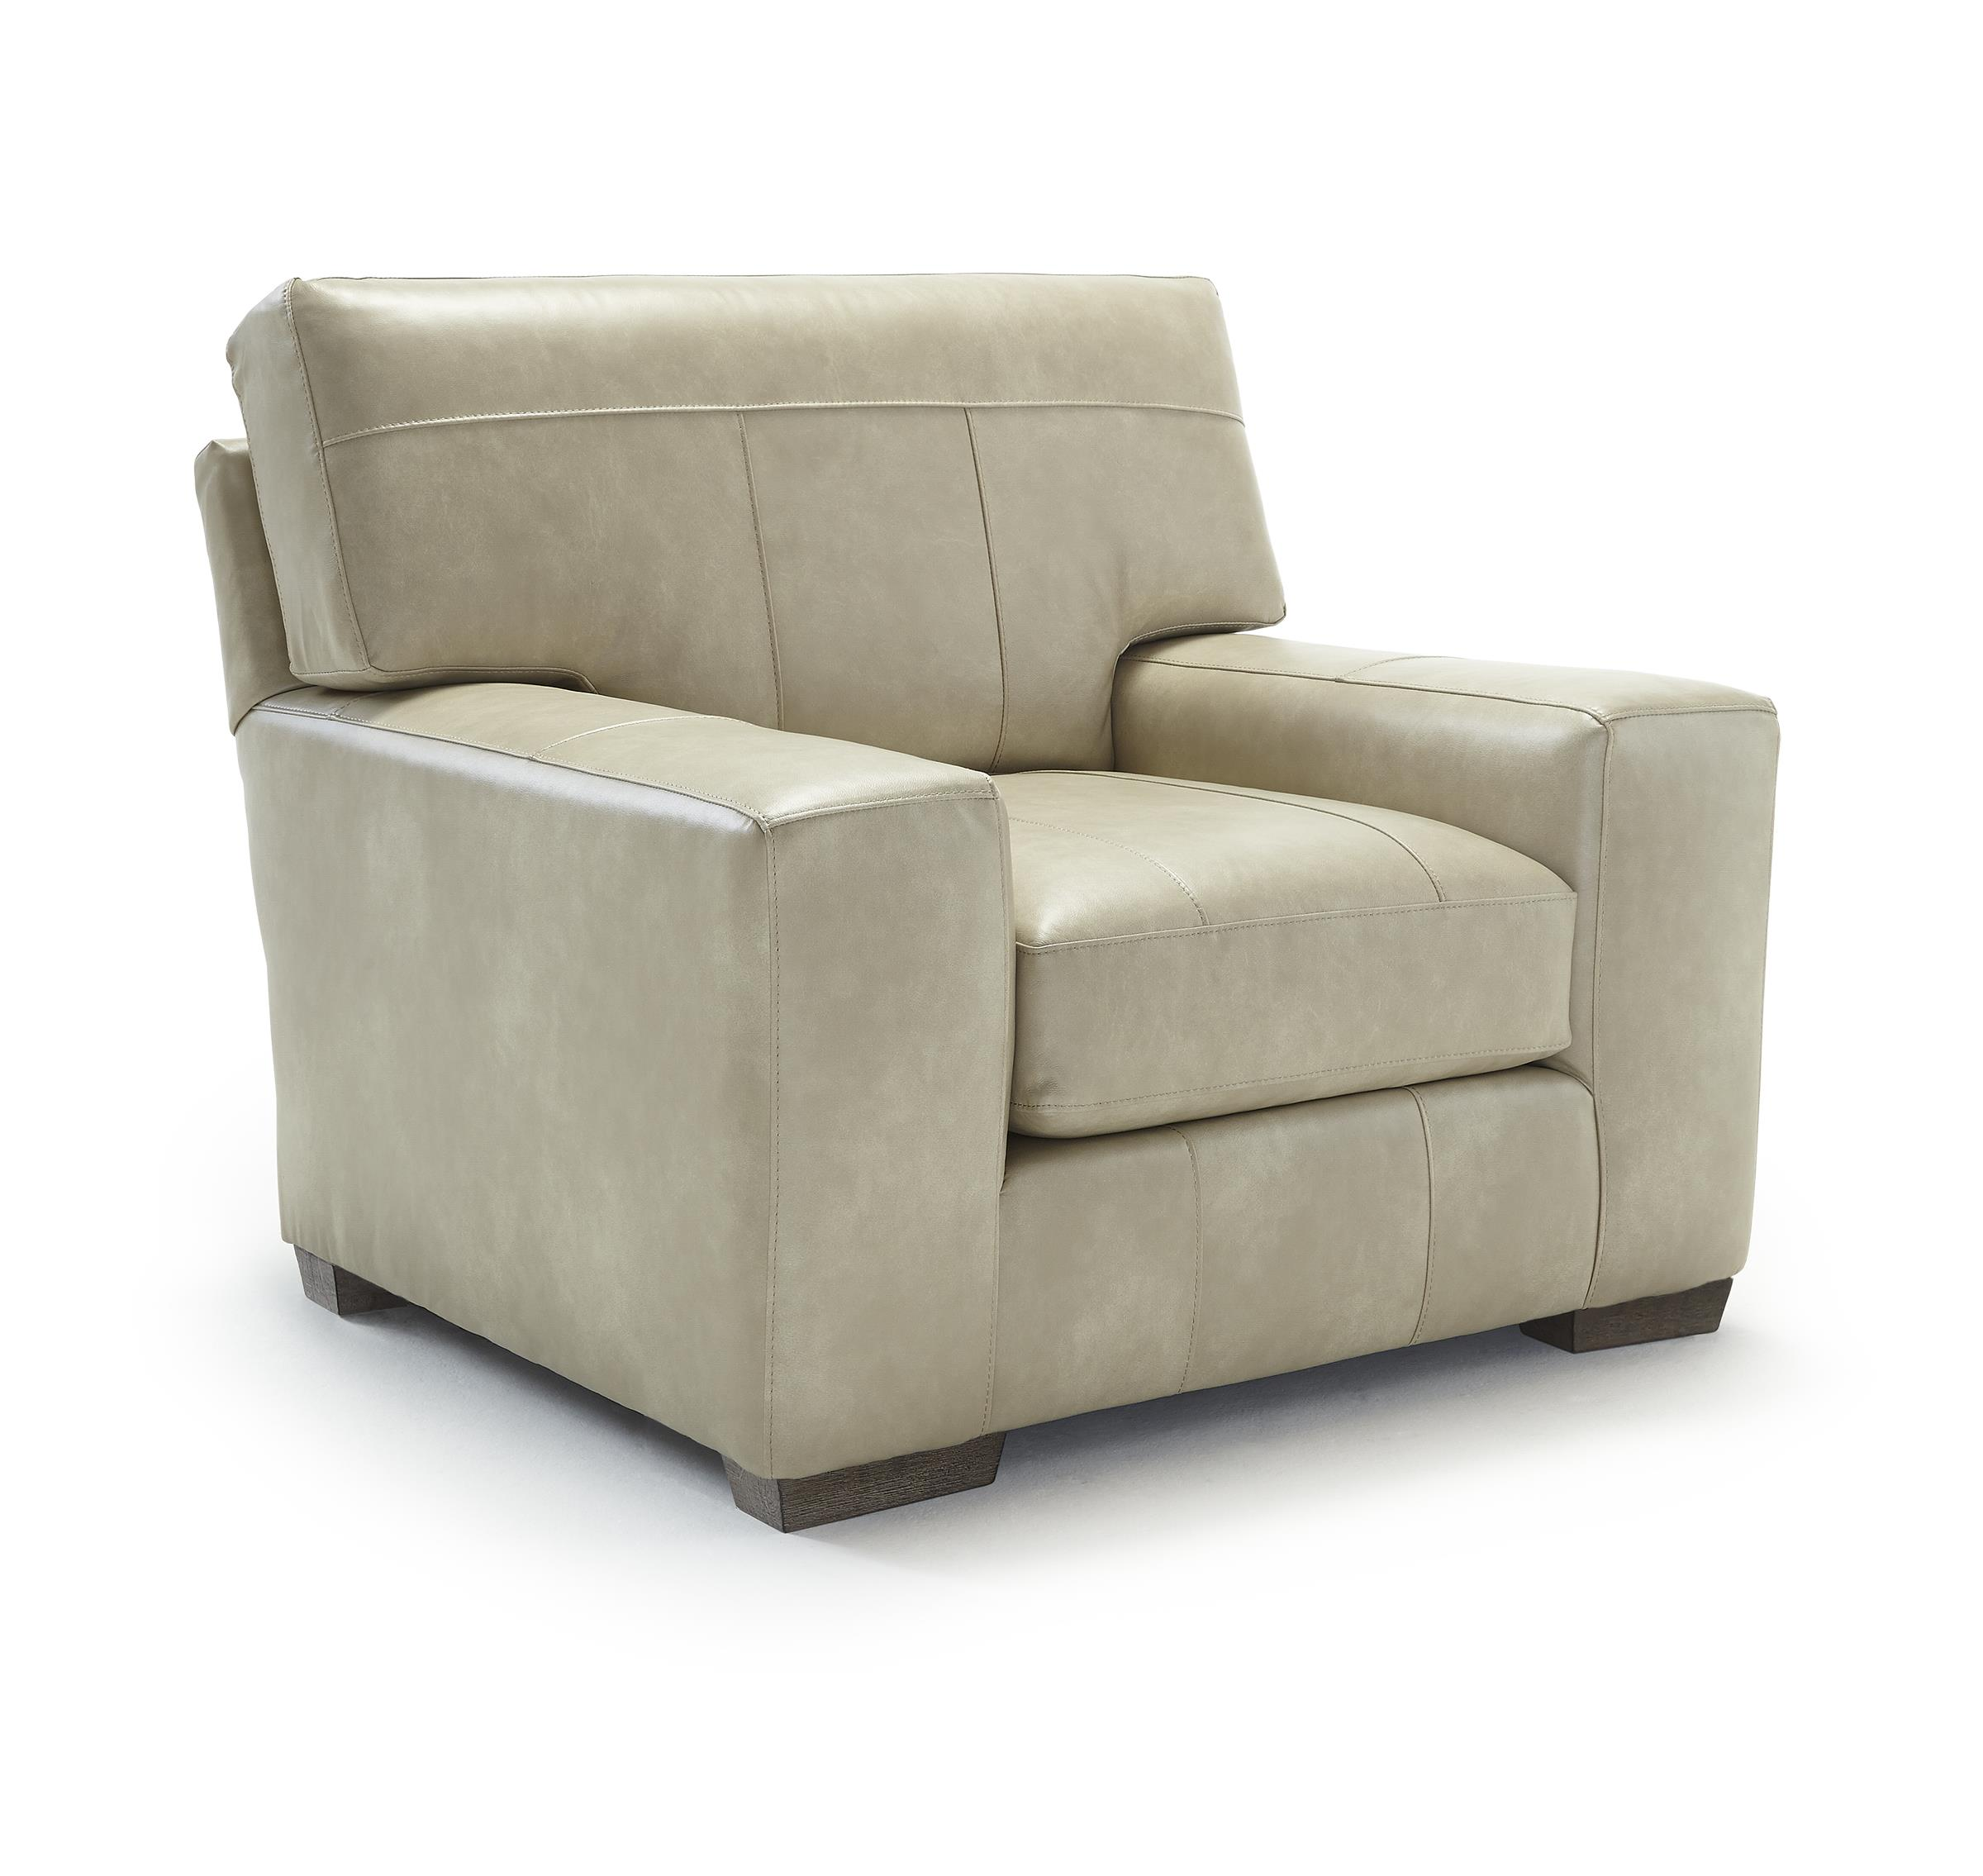 Best Home Furnishings Millport Club Chair - Item Number: C47L-73217L